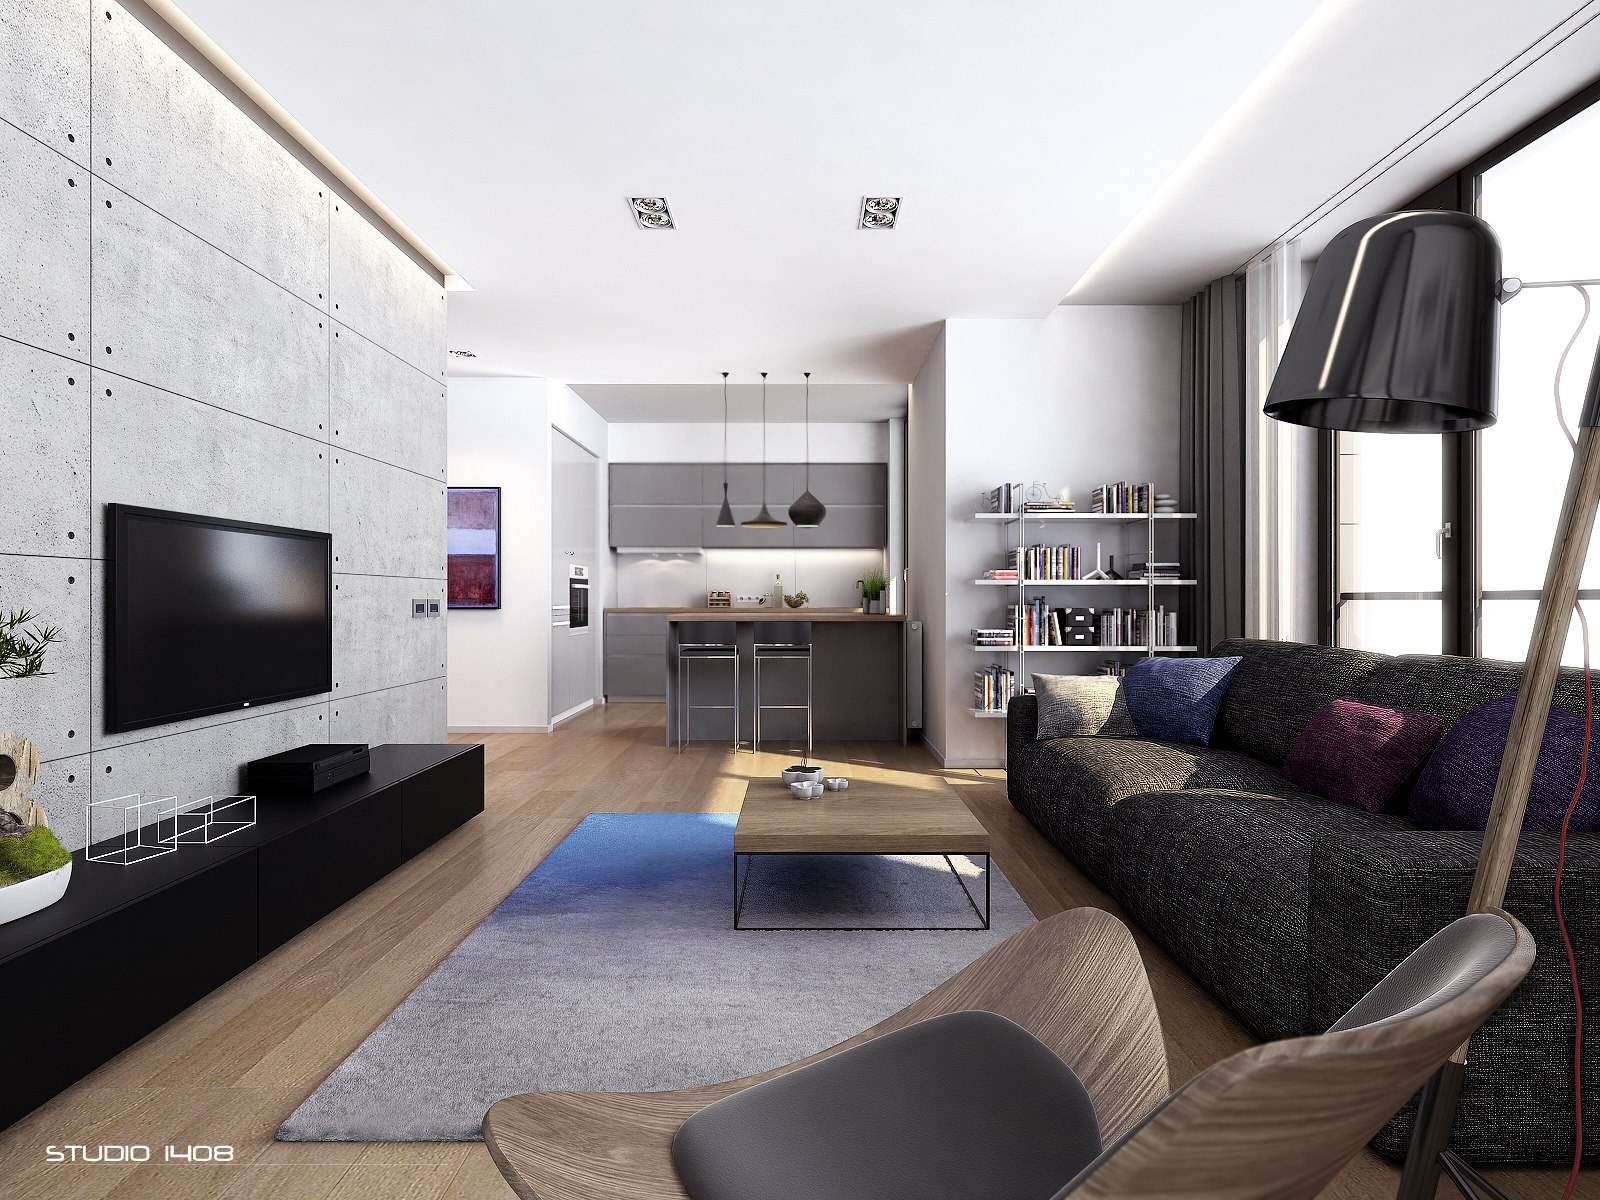 The Design Of This Apartment Space Is Ideal For Anyone Trying To Make